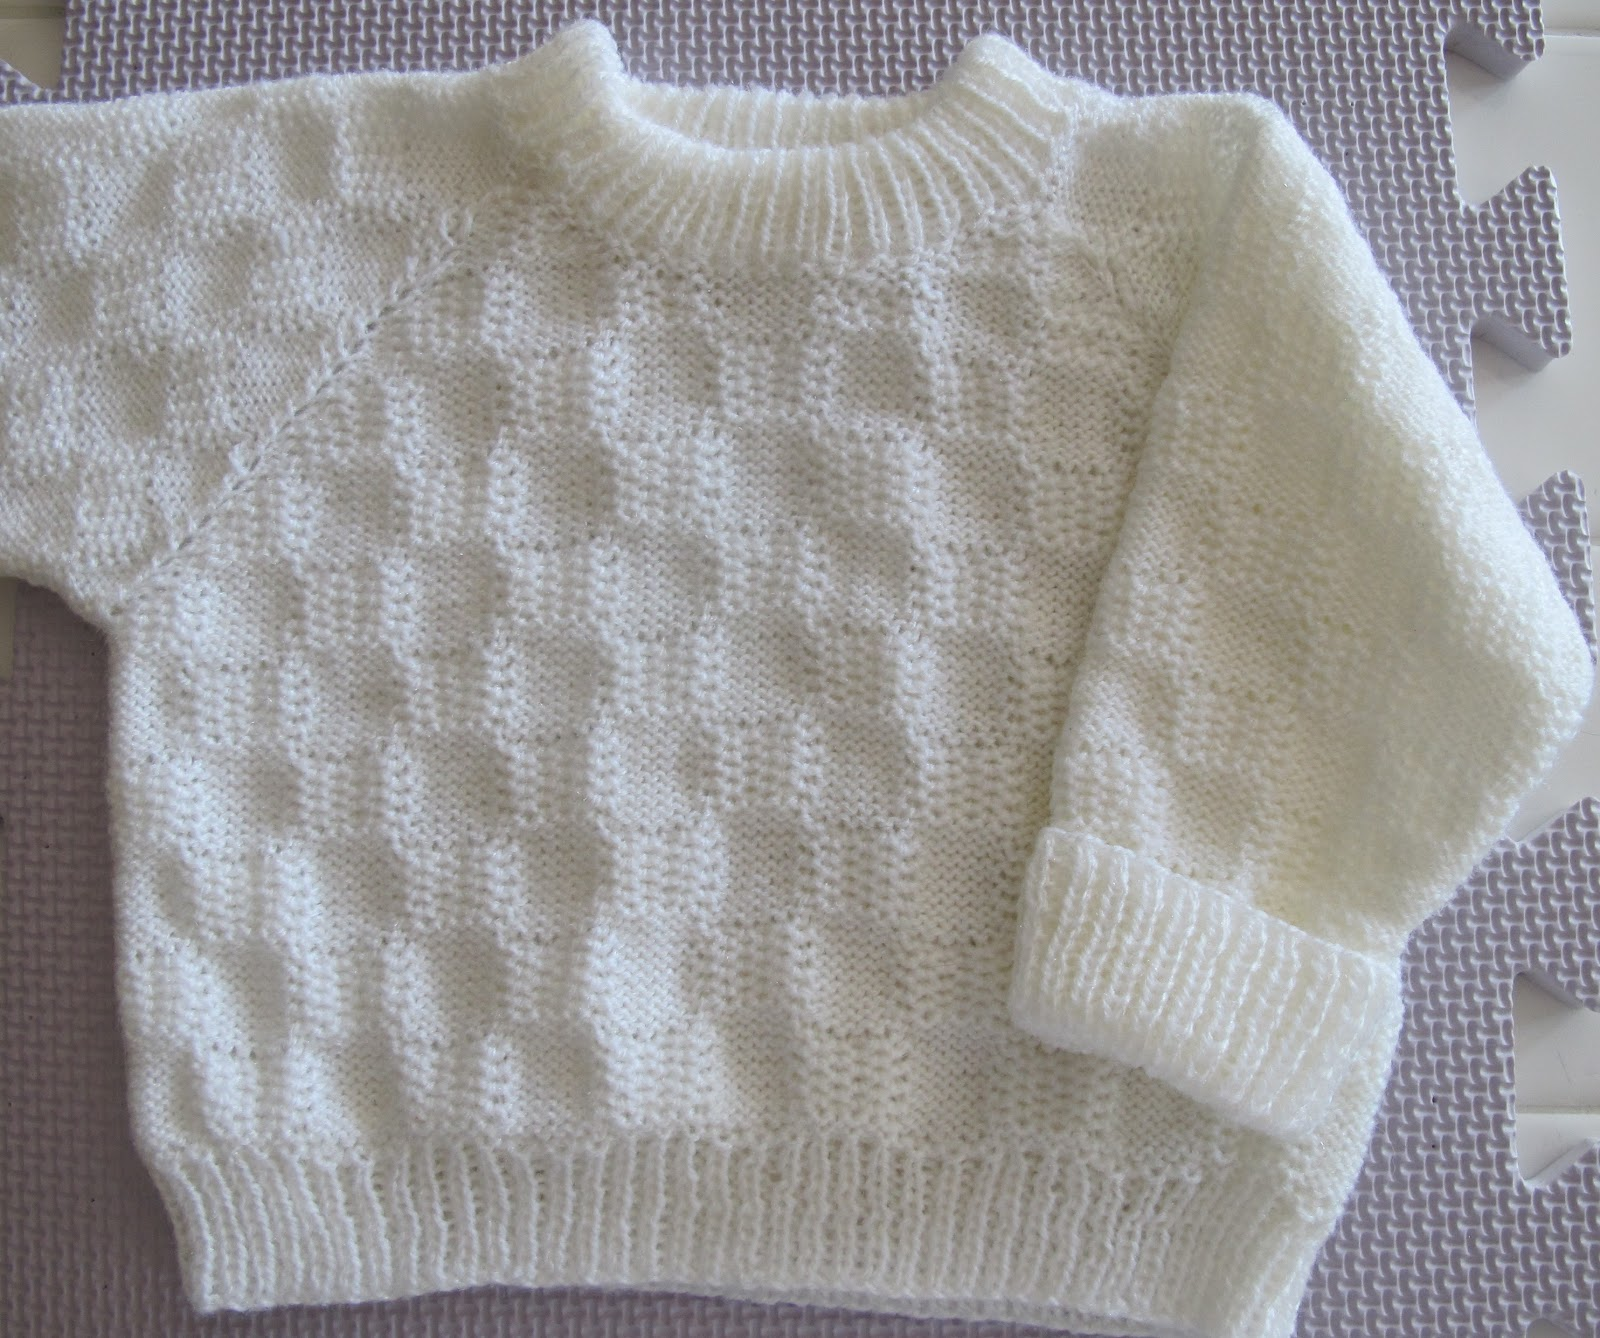 Knitting Pattern Raglan Sleeve Baby Cardigan : TOM MACHINE KNITTING GUY: Machine Knit Babys Raglan ...